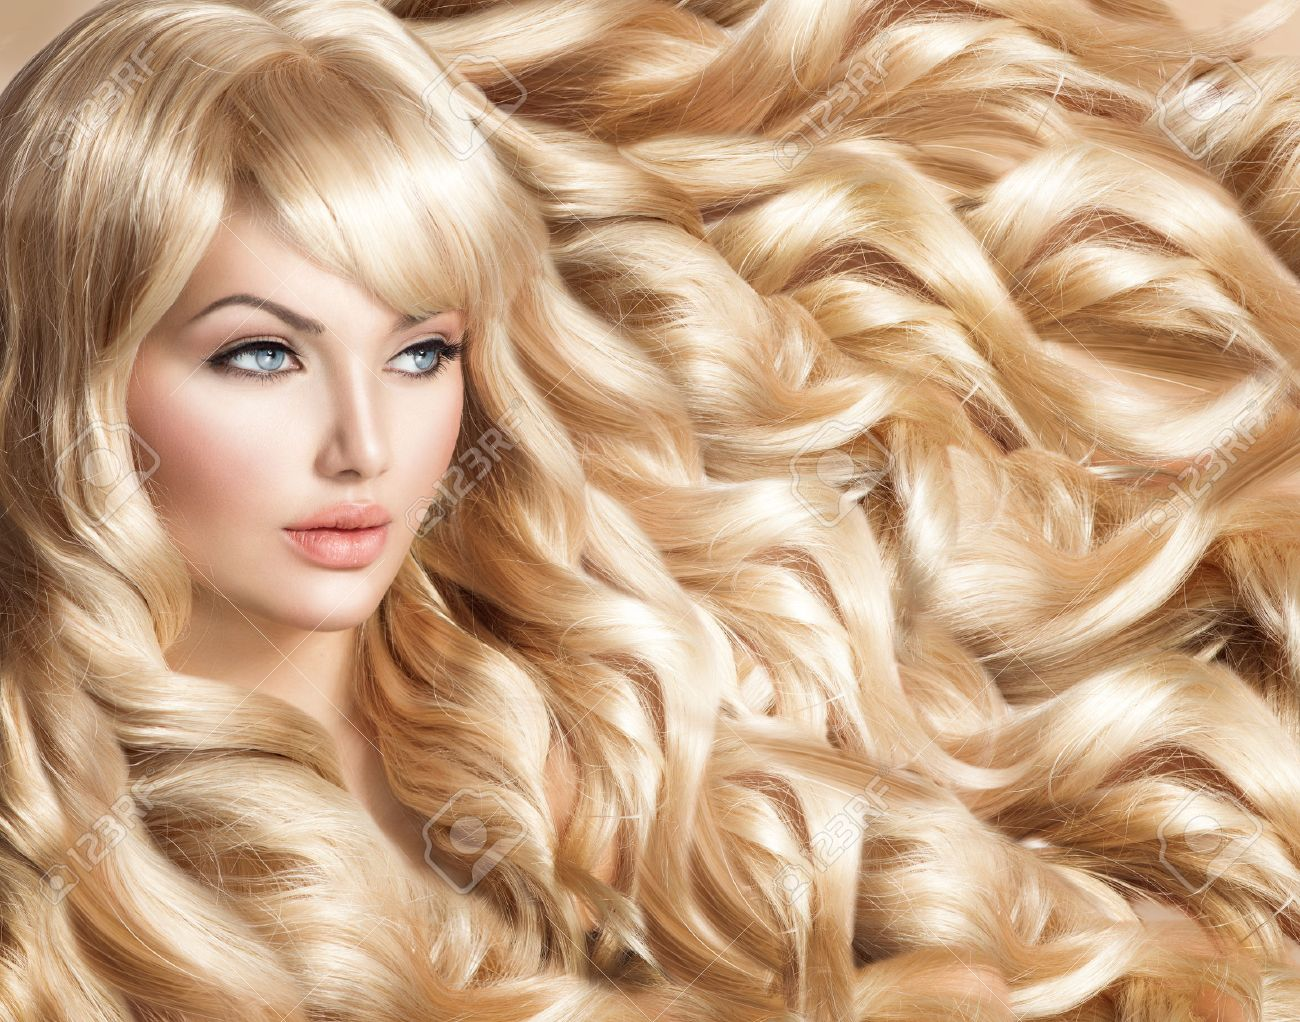 Hair Extensions Stock Photos Royalty Free Hair Extensions Images